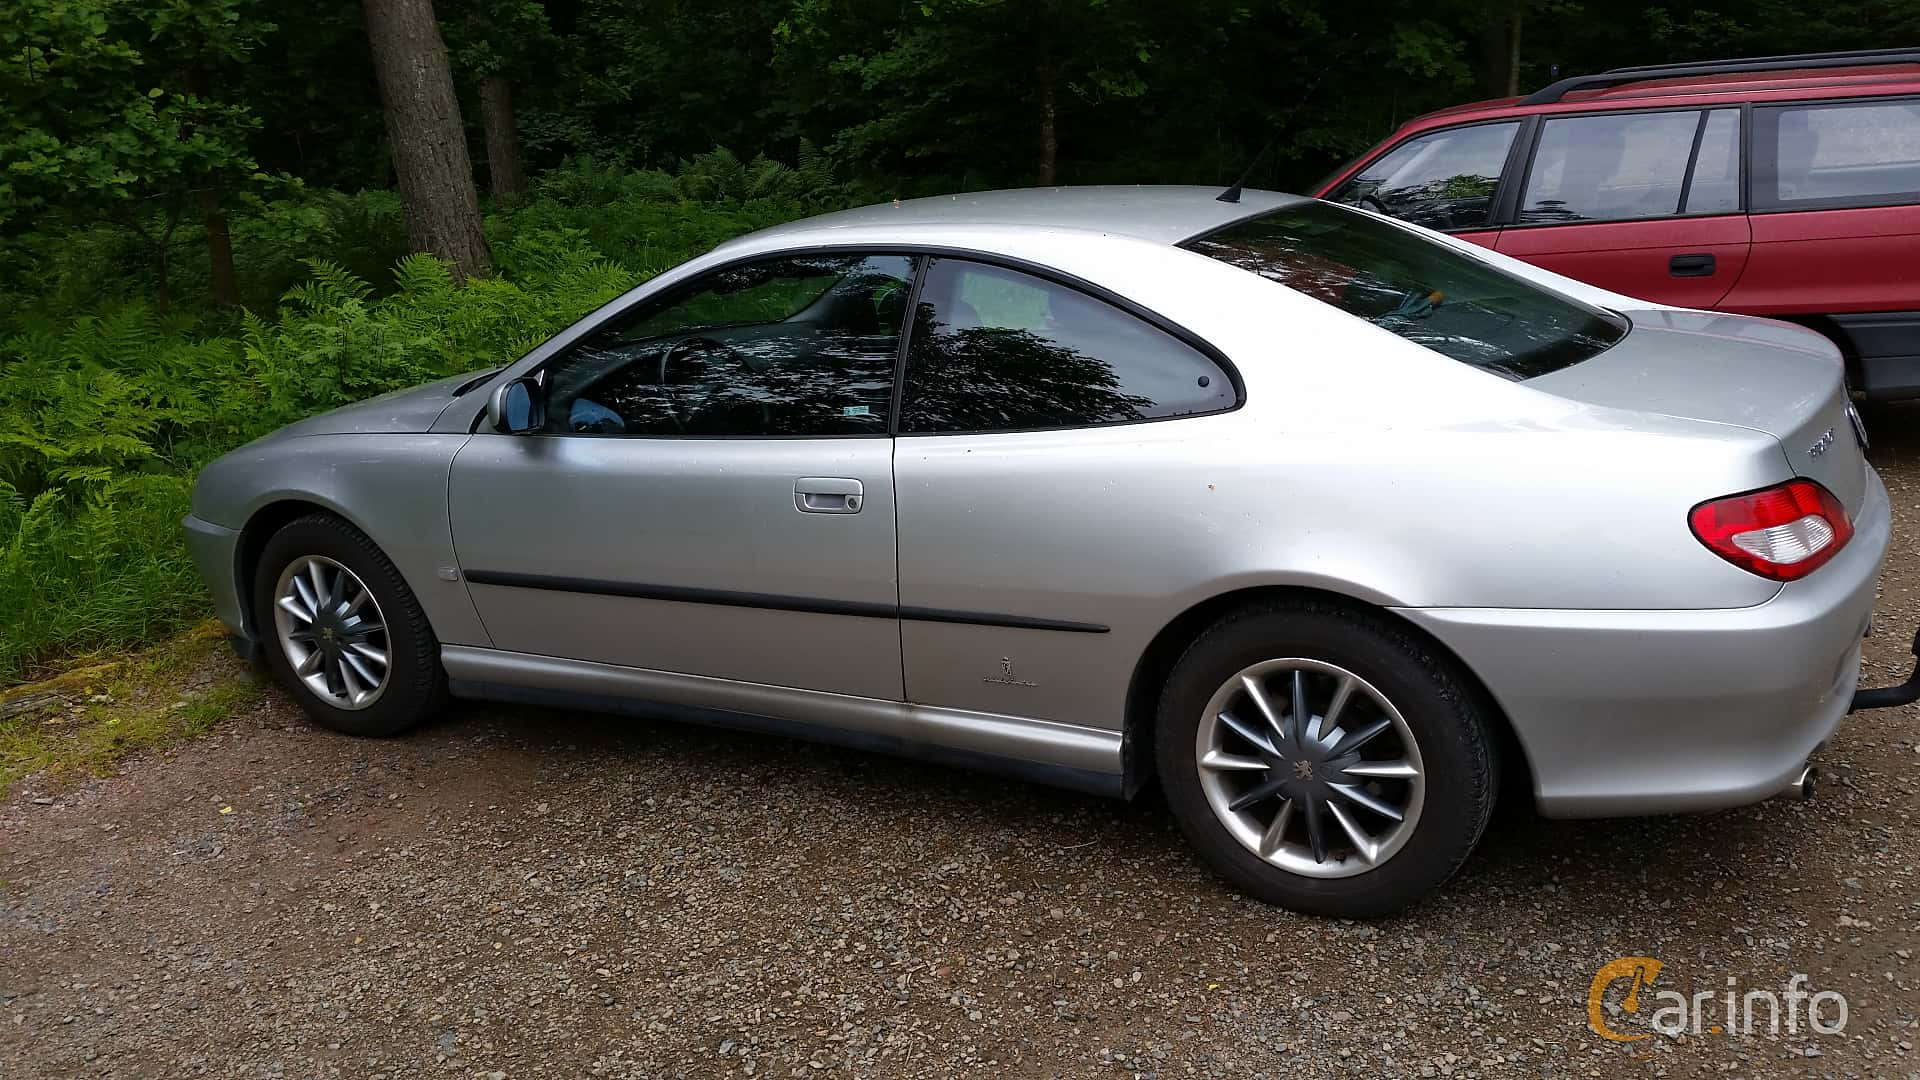 3 images of peugeot 406 coup 2 2 manual 158hp 2003 by jonasbonde rh car info Peugeot 508 Exhaust 406 Coupe